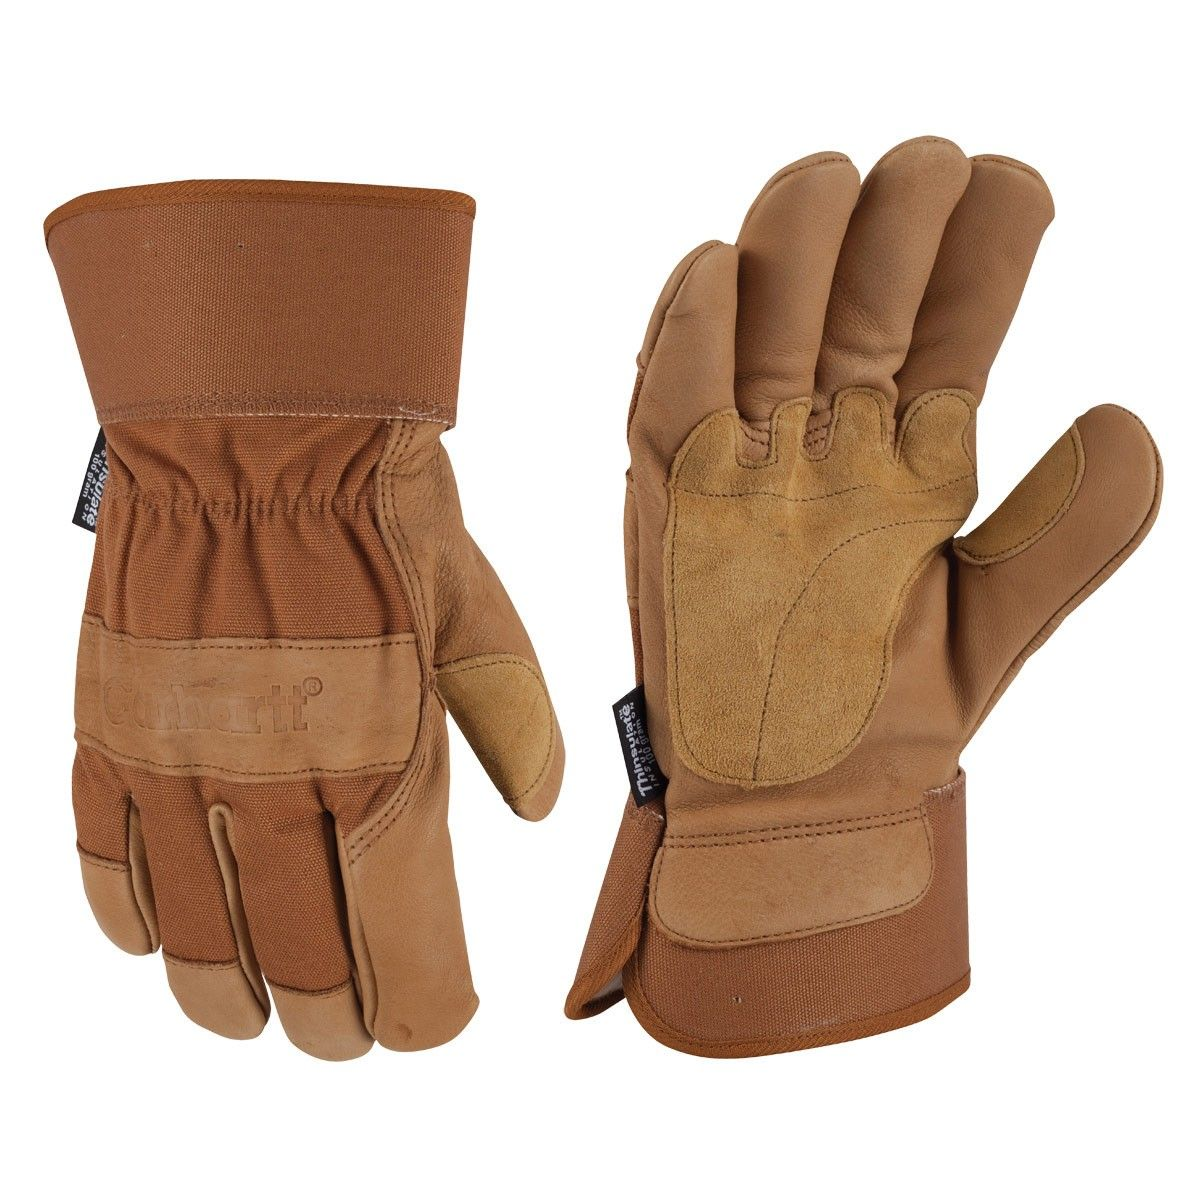 Best Work Gloves Leather Waterproof Insulated For Cold Winter Weather Leather Work Gloves Best Work Gloves Work Gloves